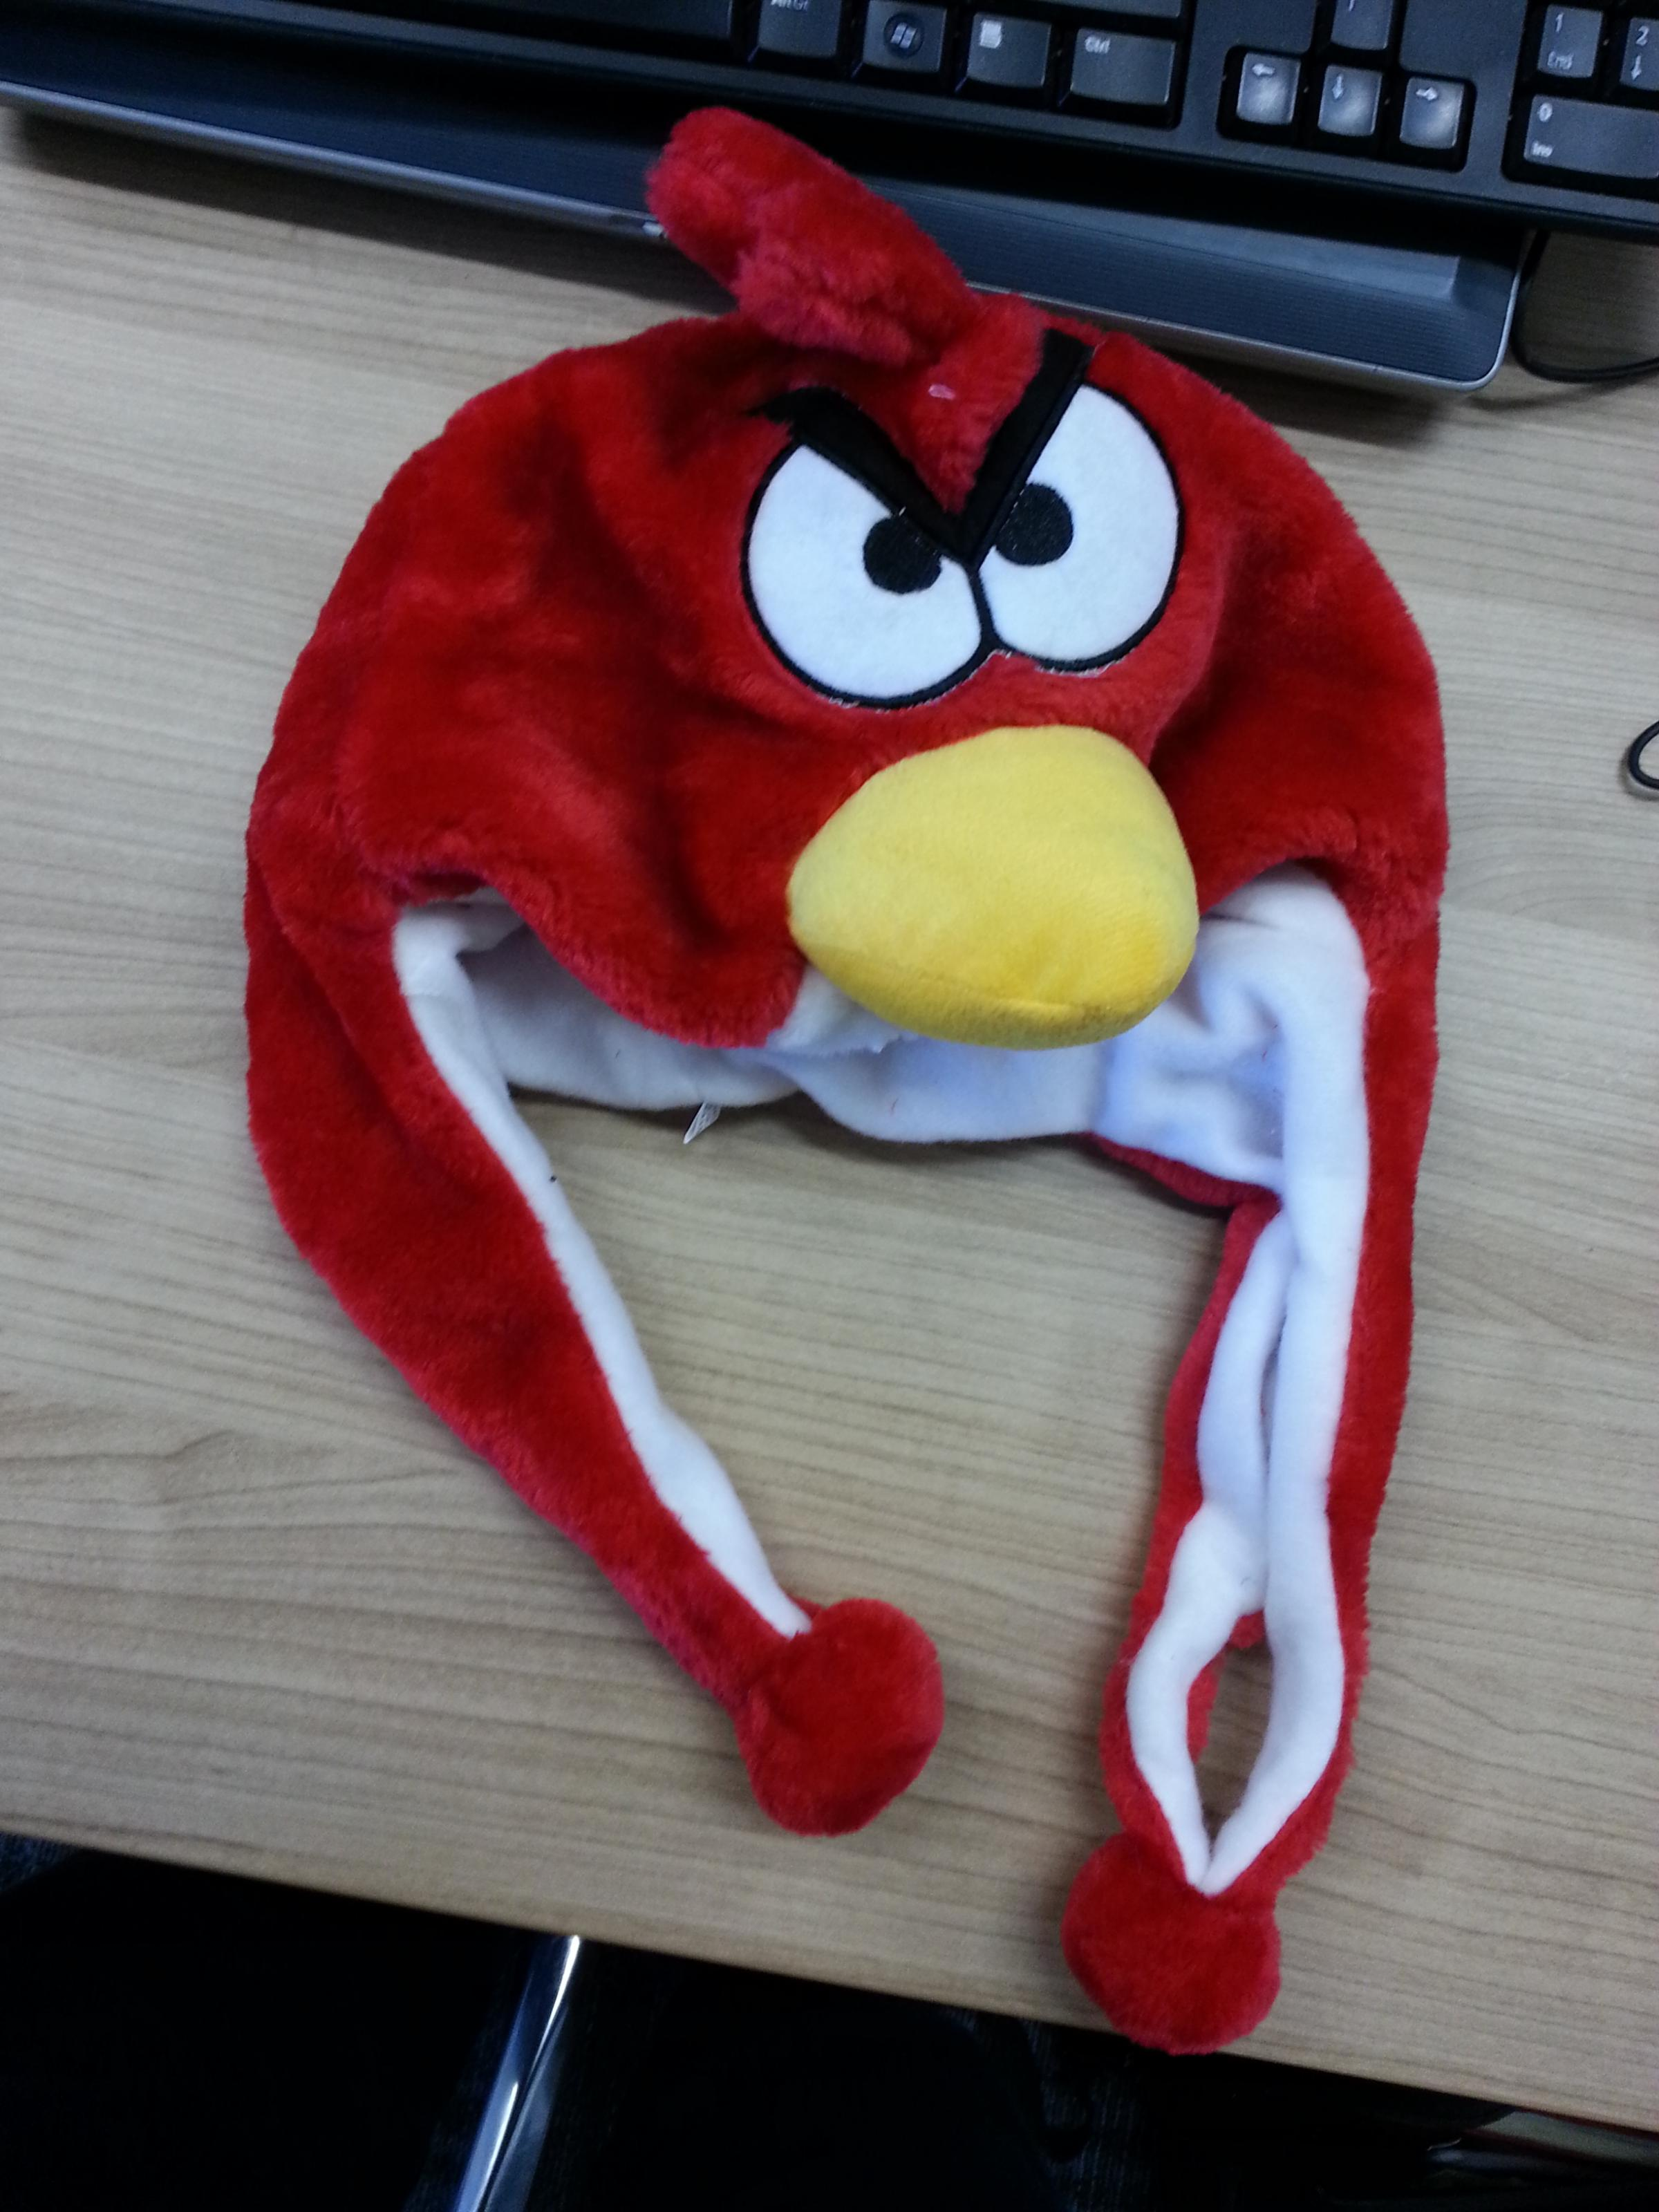 One of the hats, which has been seized by trading standards officers at Trowbridge and Salisbury markets